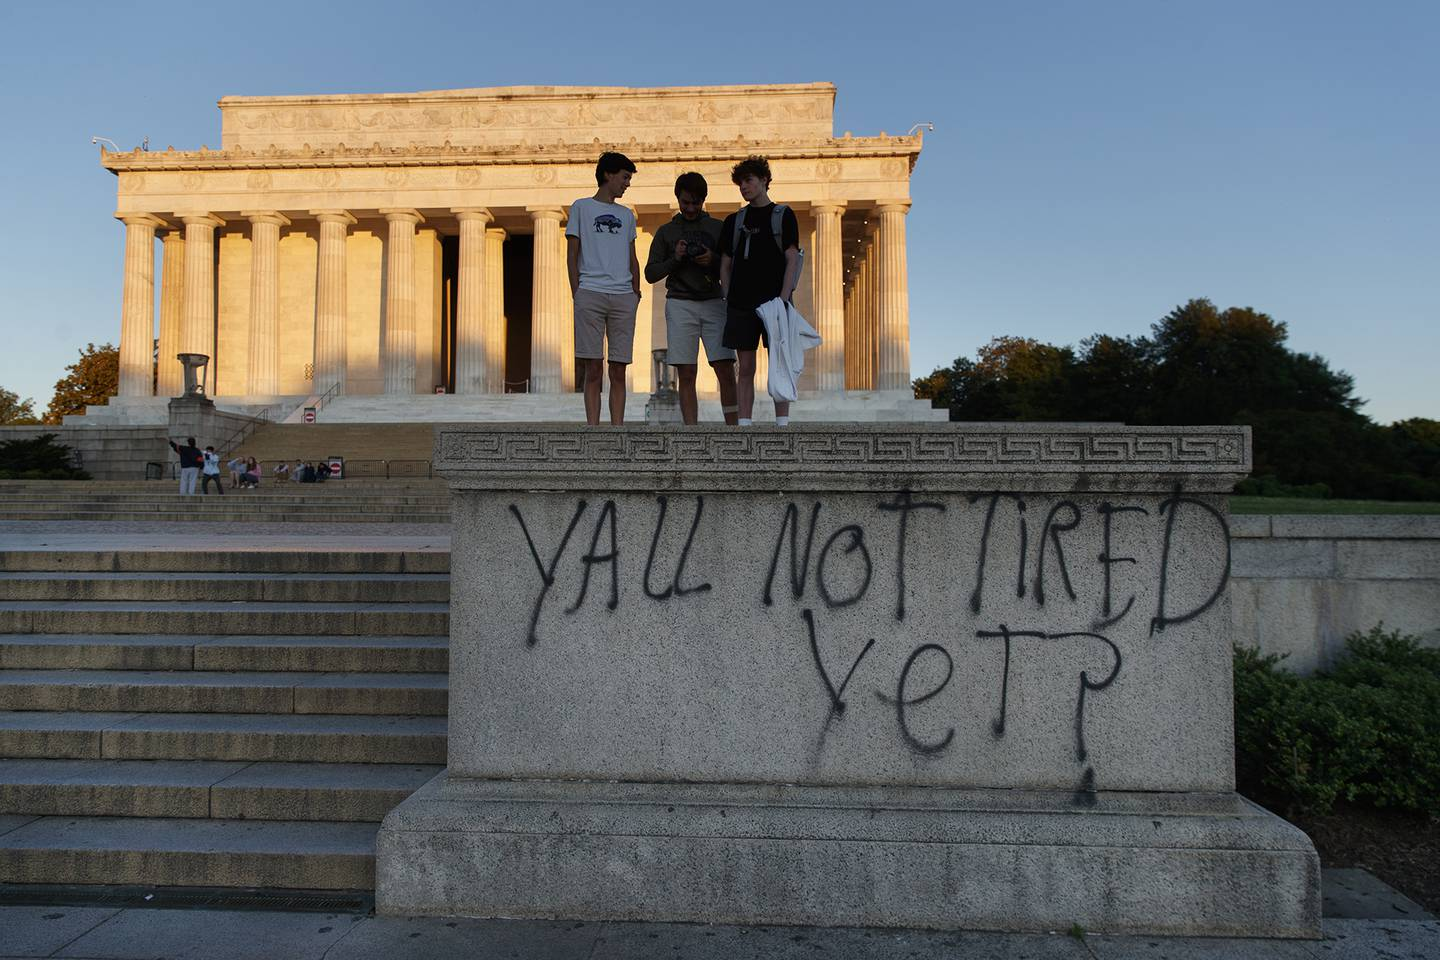 """Spray paint that reads """"Yall Not Tired Yet?"""" is seen on the base of the Lincoln Memorial on the National Mall in Washington, early Sunday, May 31, 2020, the morning after protests over the death of George Floyd."""